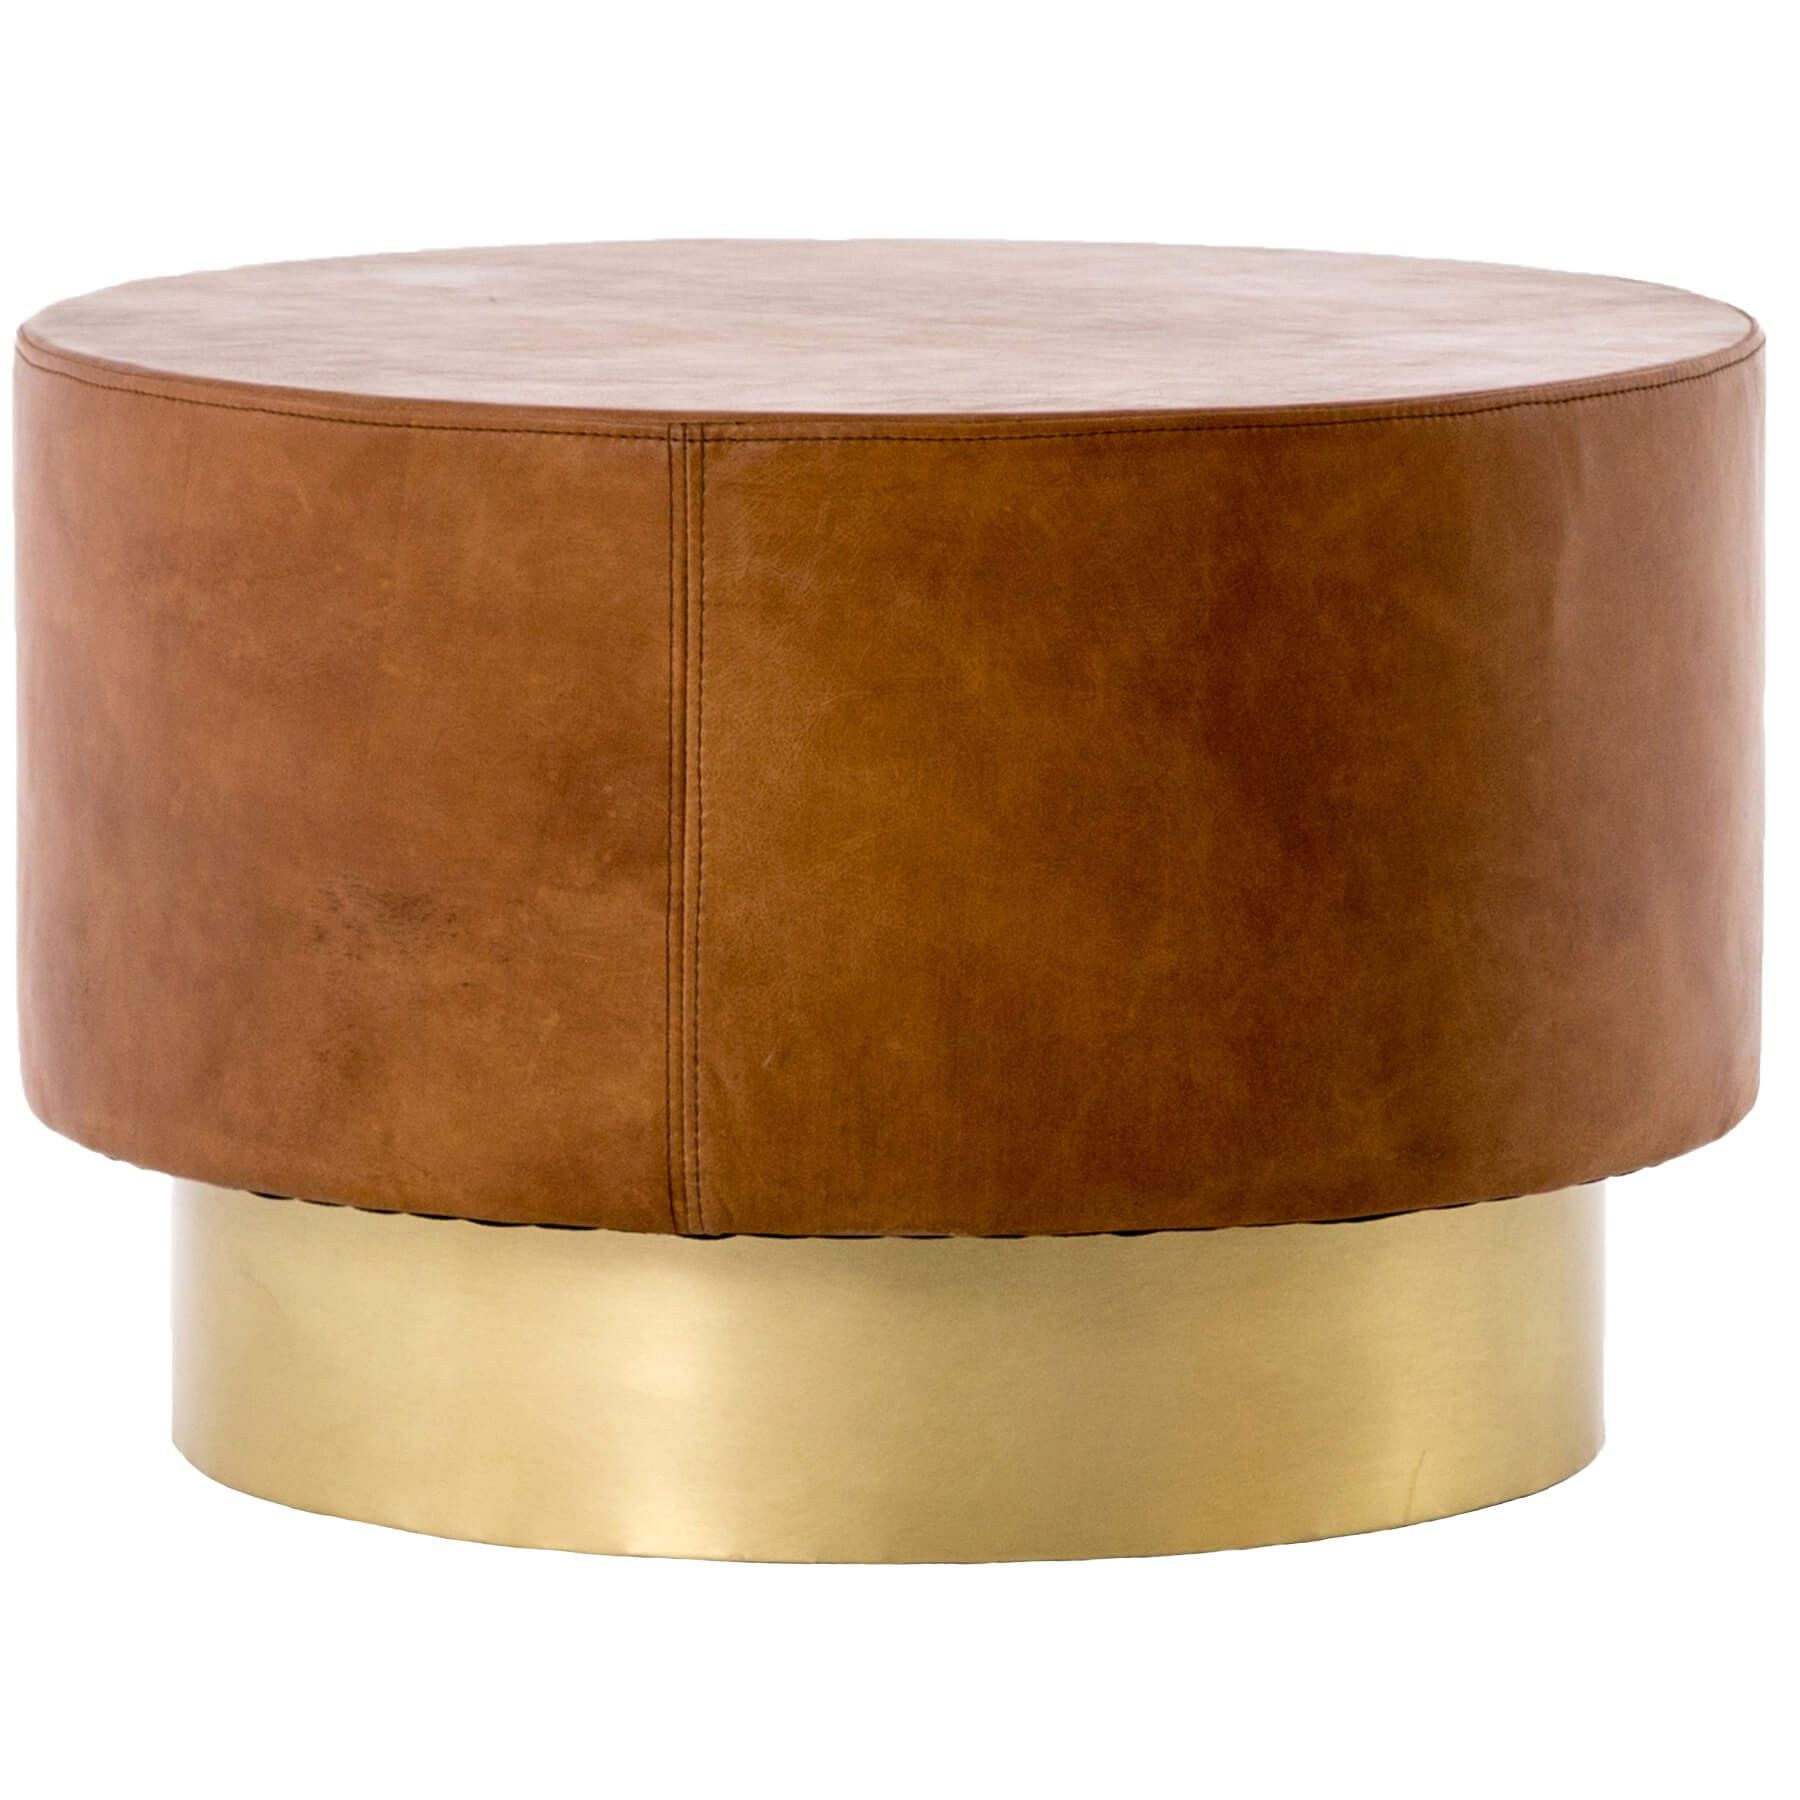 Flint Bunching Table Patina Copper Cool Coffee Tables Leather Coffee Table Copper Patina [ 1800 x 1800 Pixel ]